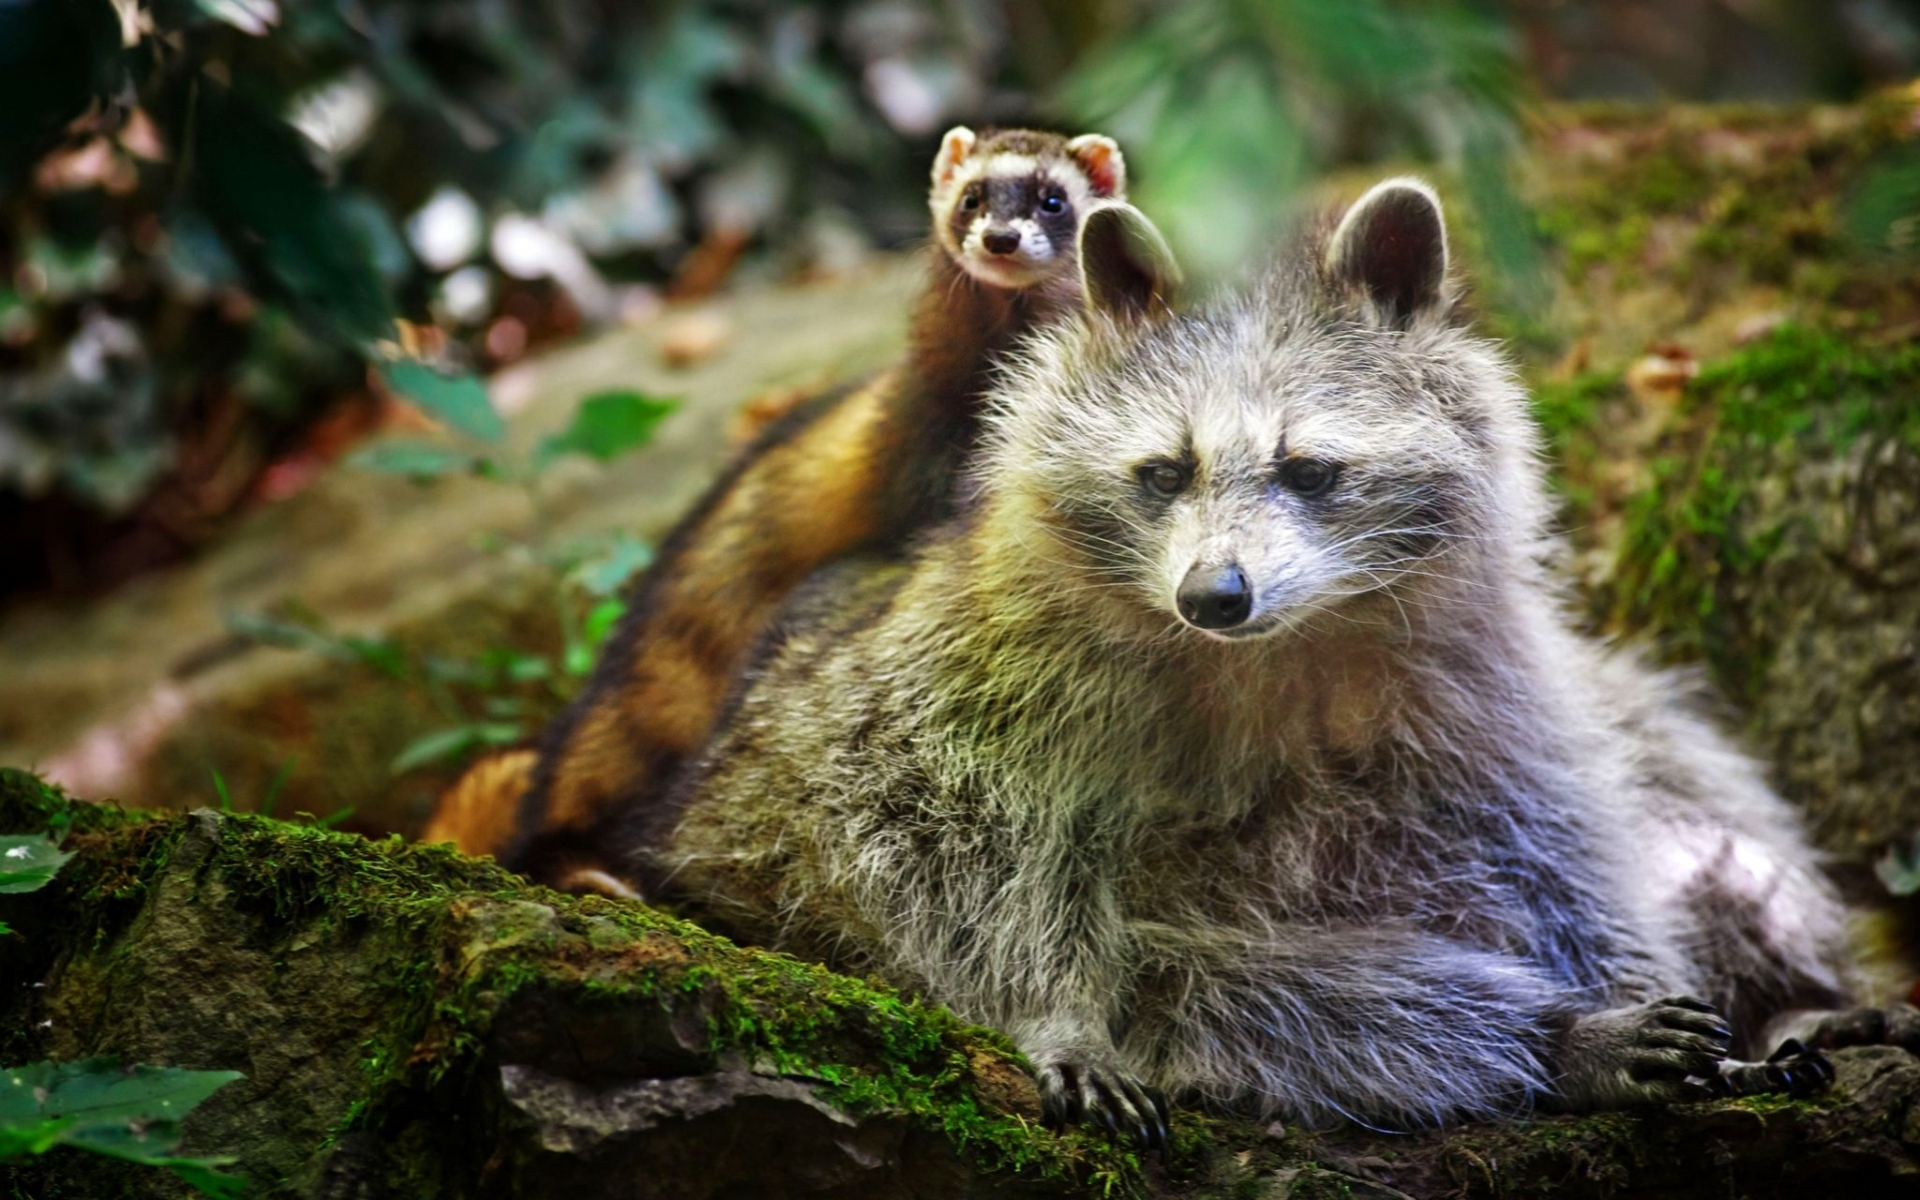 28630 download wallpaper Animals, Raccoons screensavers and pictures for free